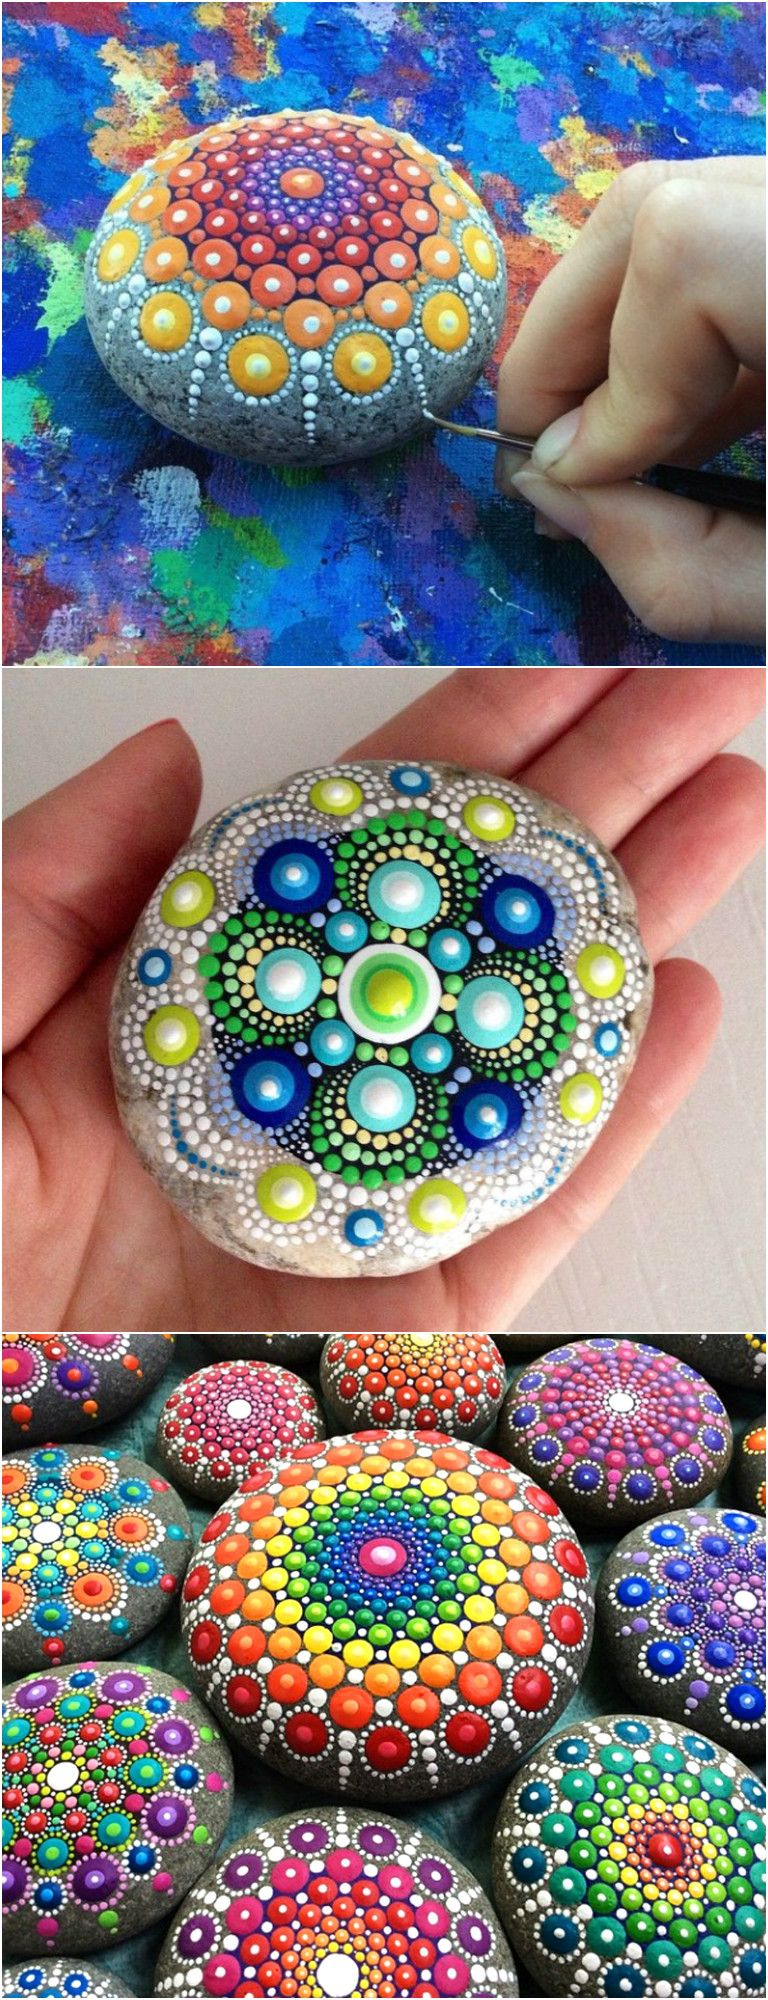 How To Make Painted Rocks To Decorate Your Home & Garden